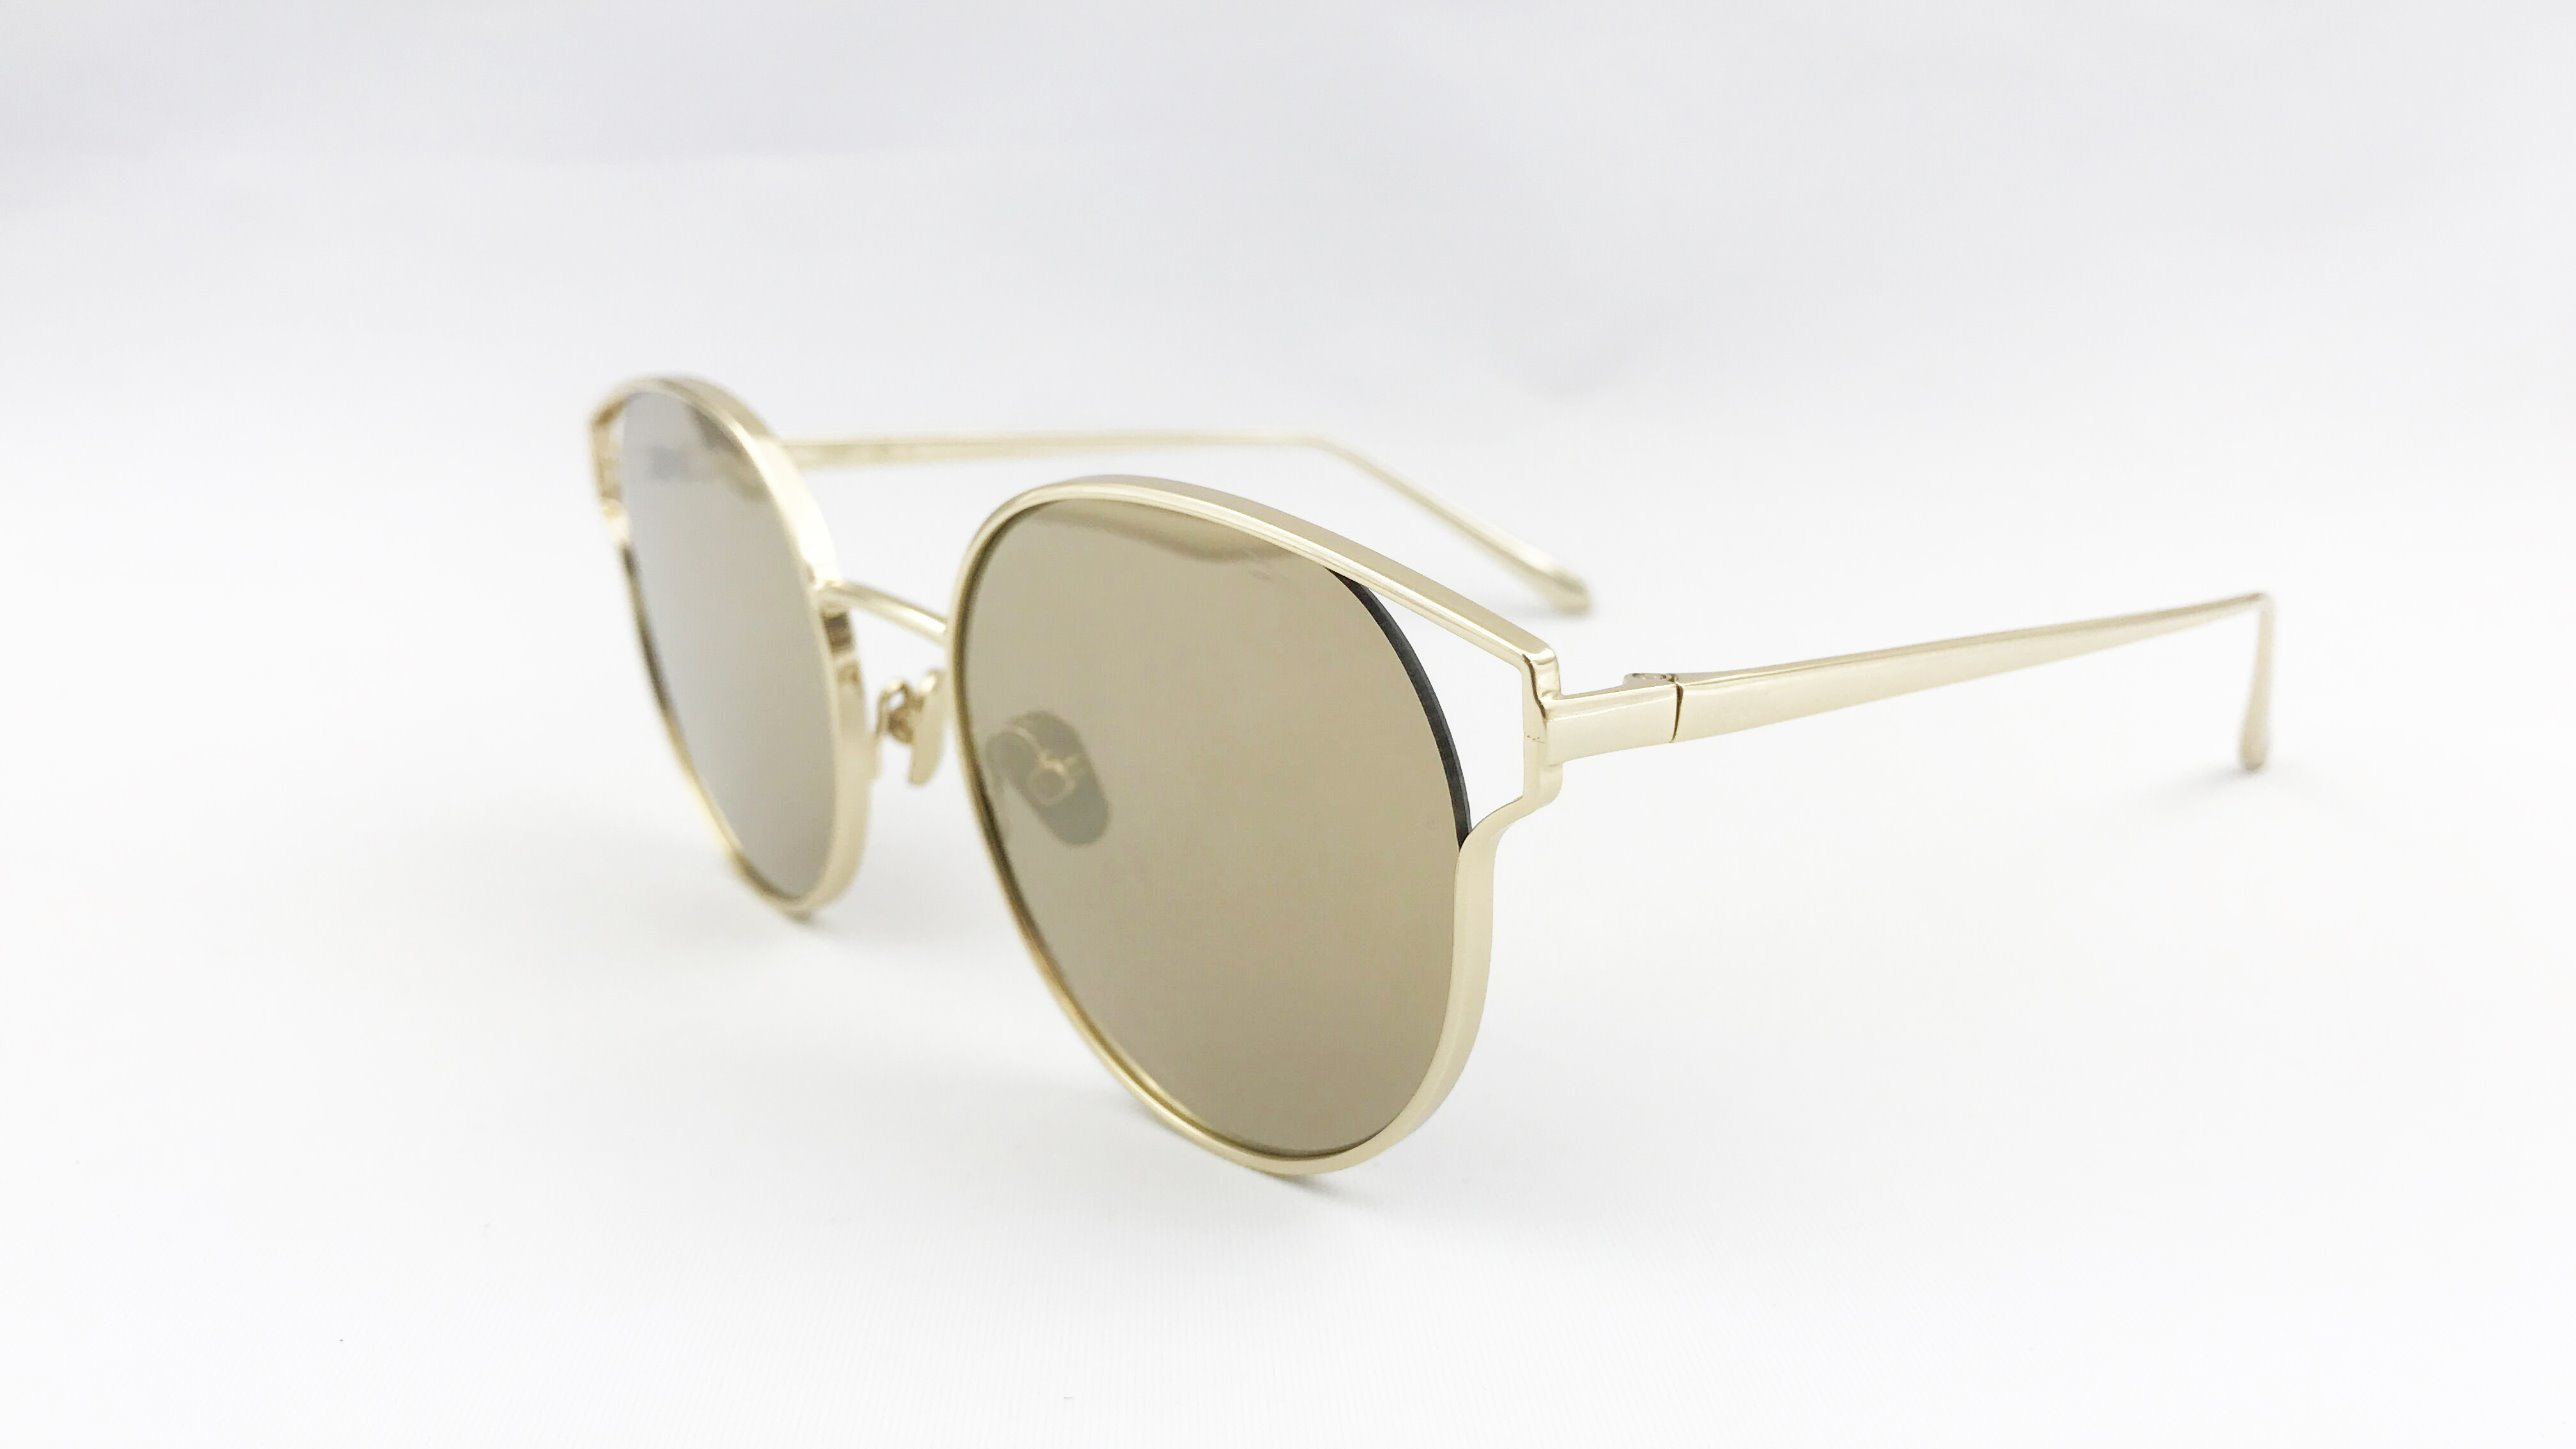 2016 Gentle Monster Style Metal Sunglasses for Unisex. Eh1603